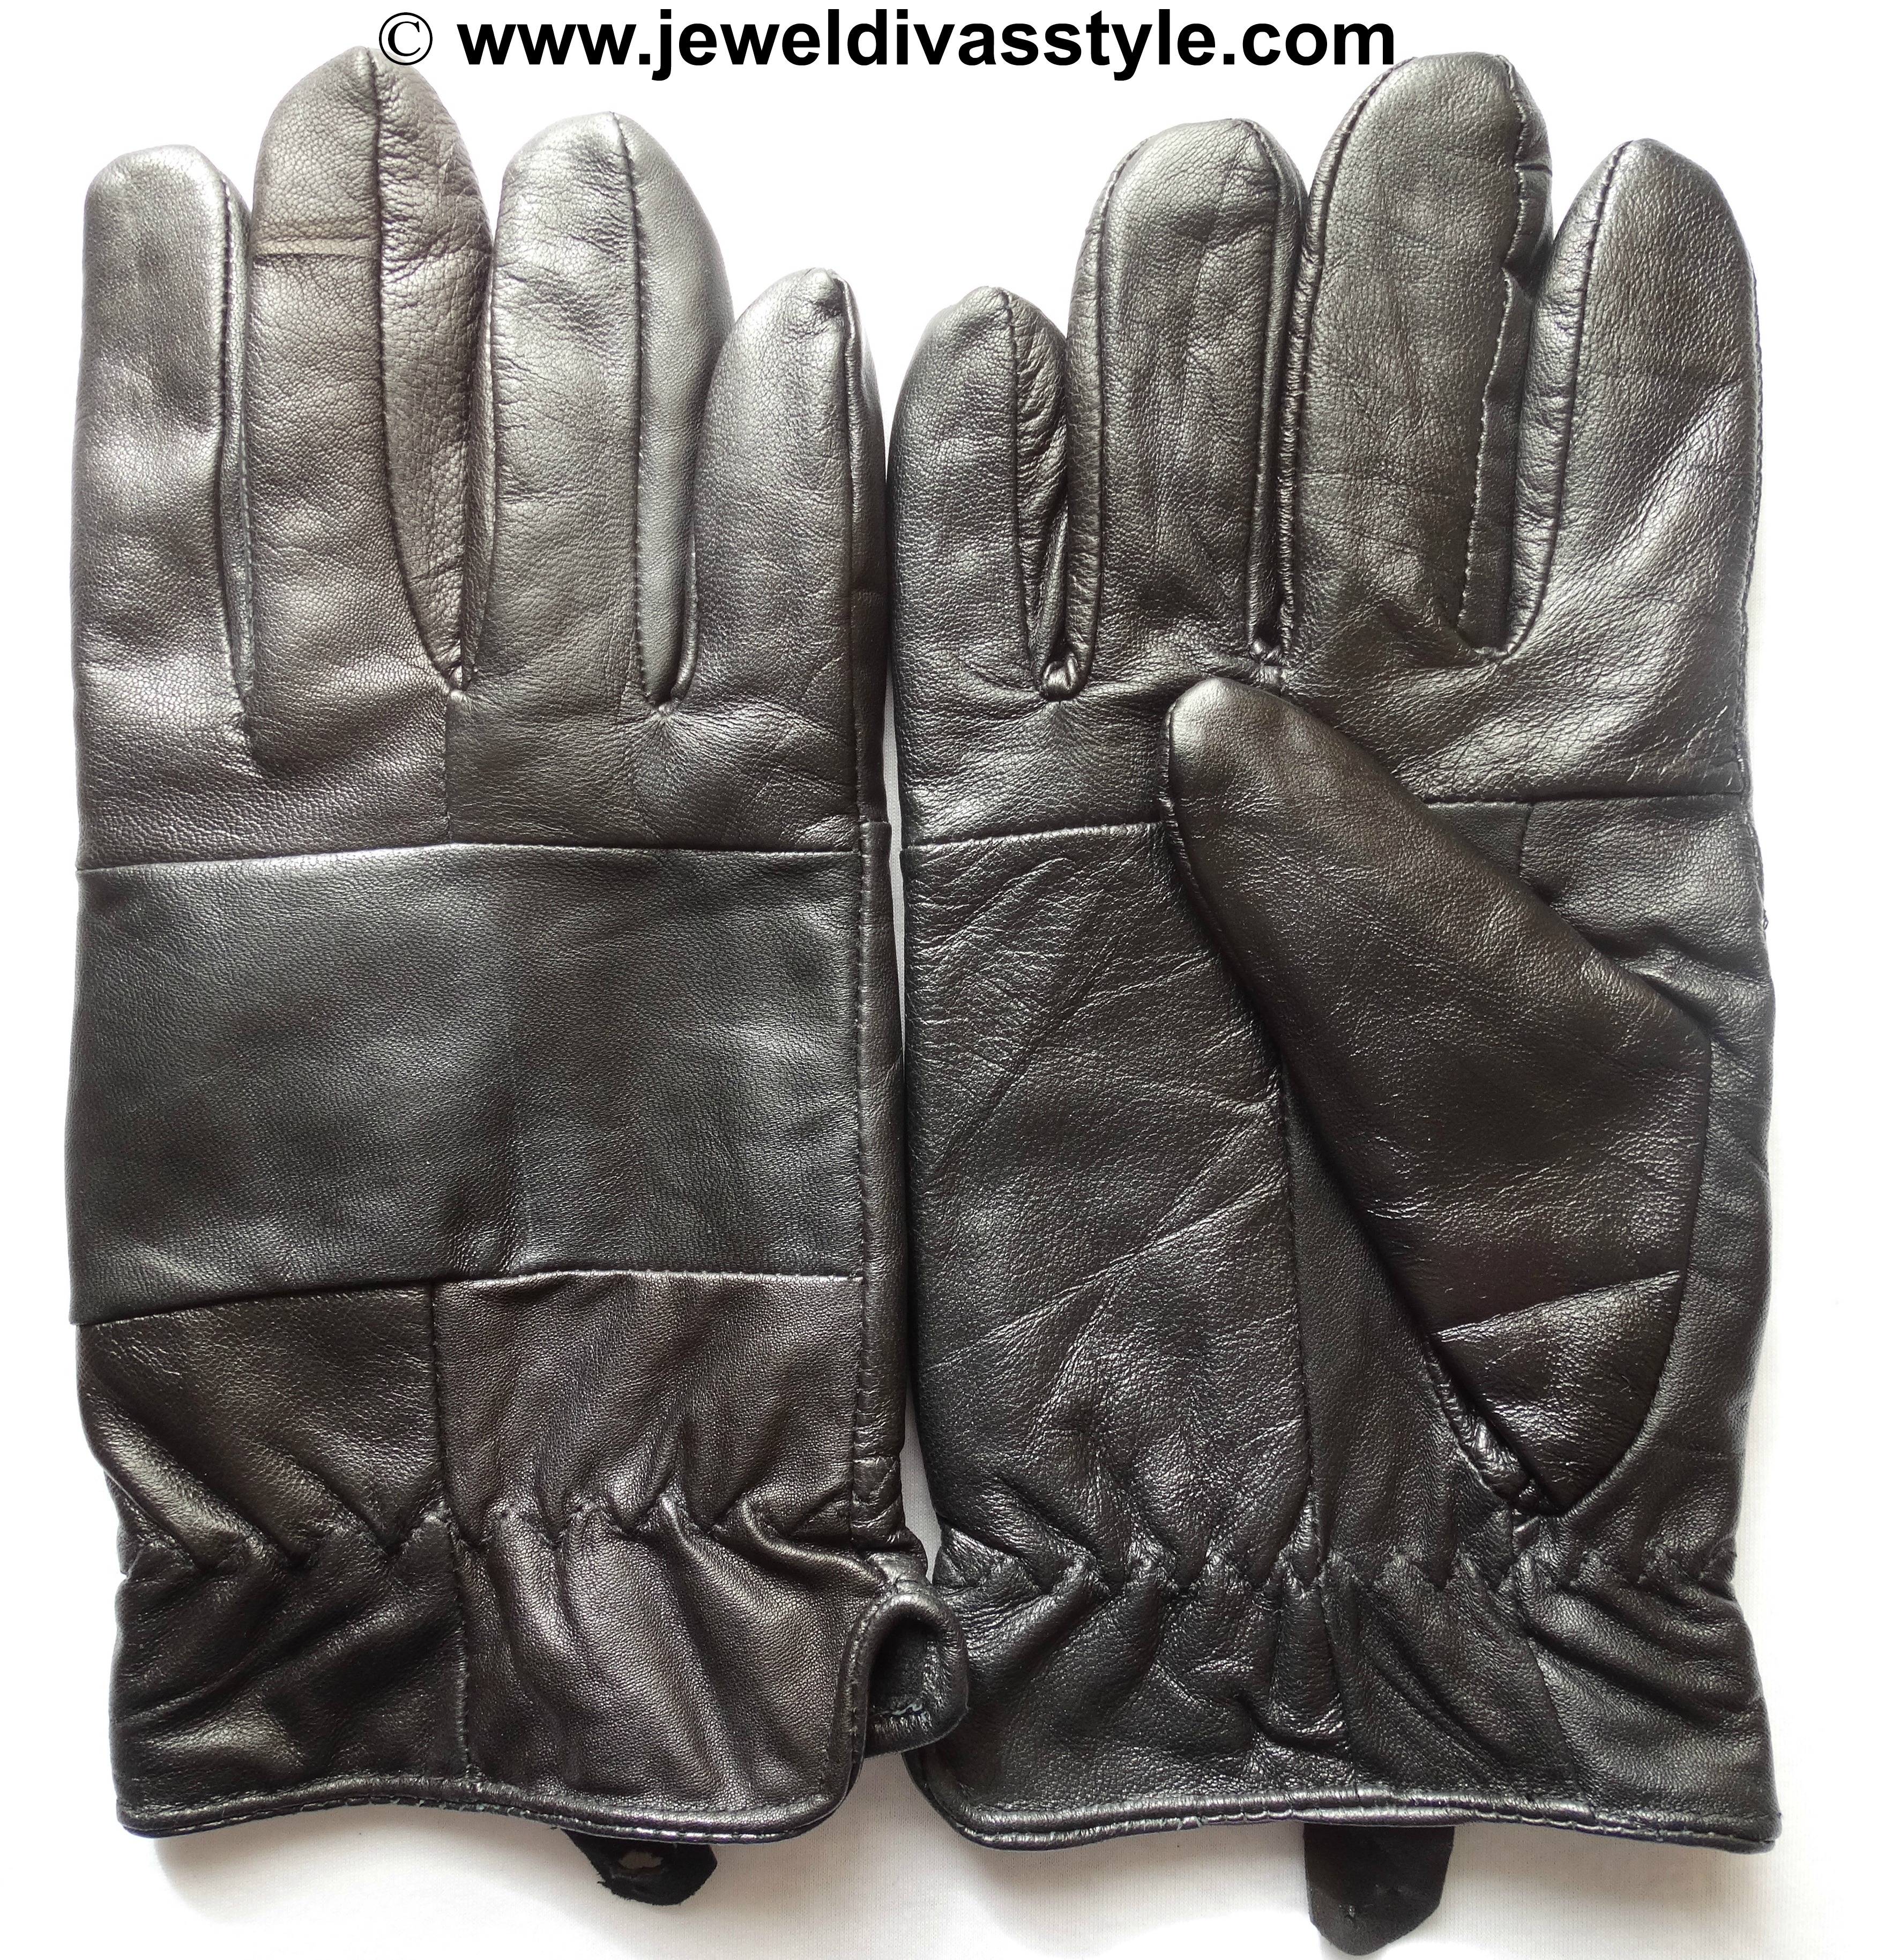 KMART BLACK LEATHER GLOVES